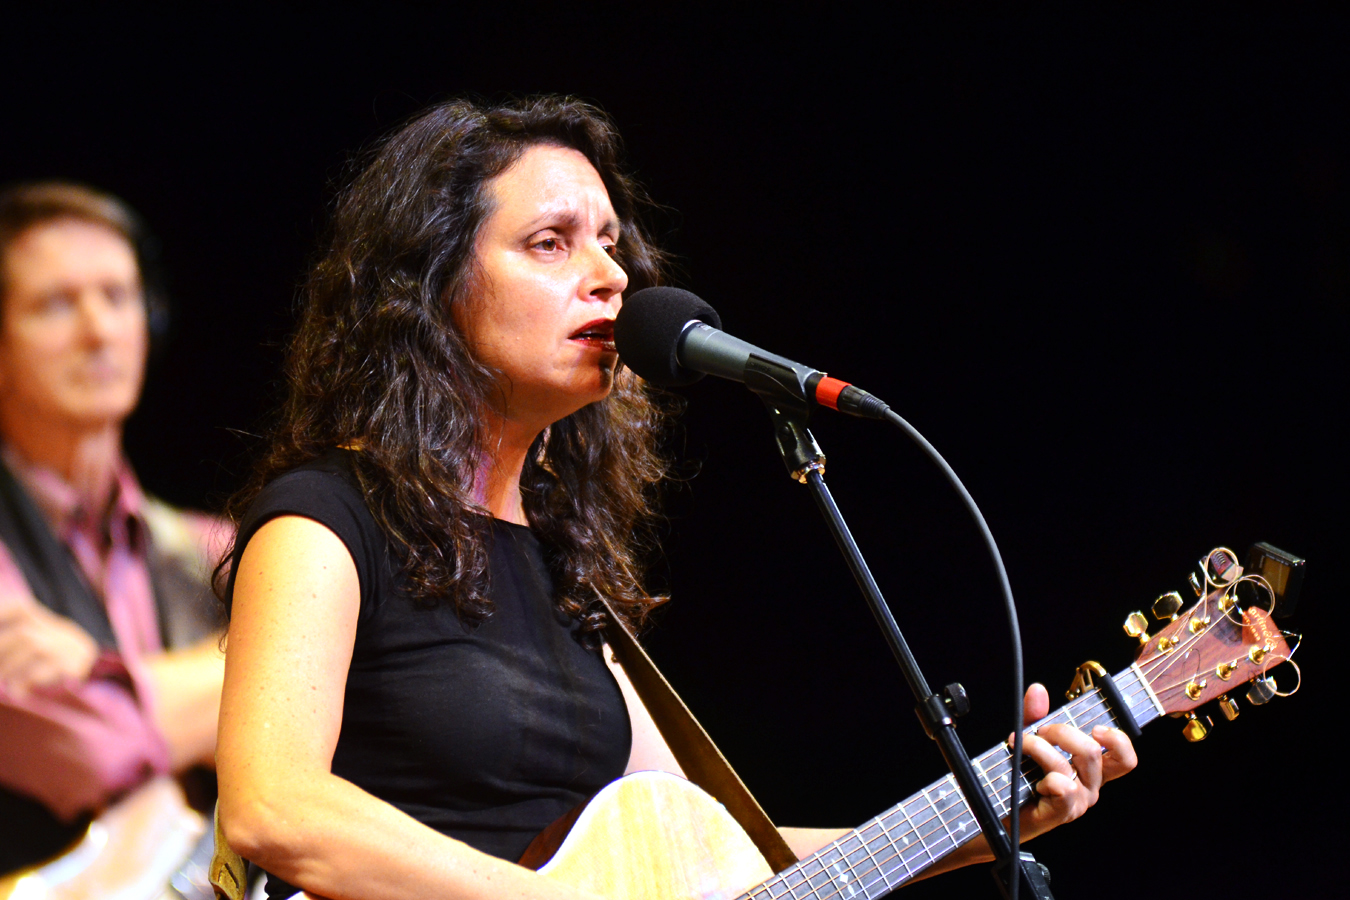 Lucy Kaplansky plays songs from her latest album, Reunion.